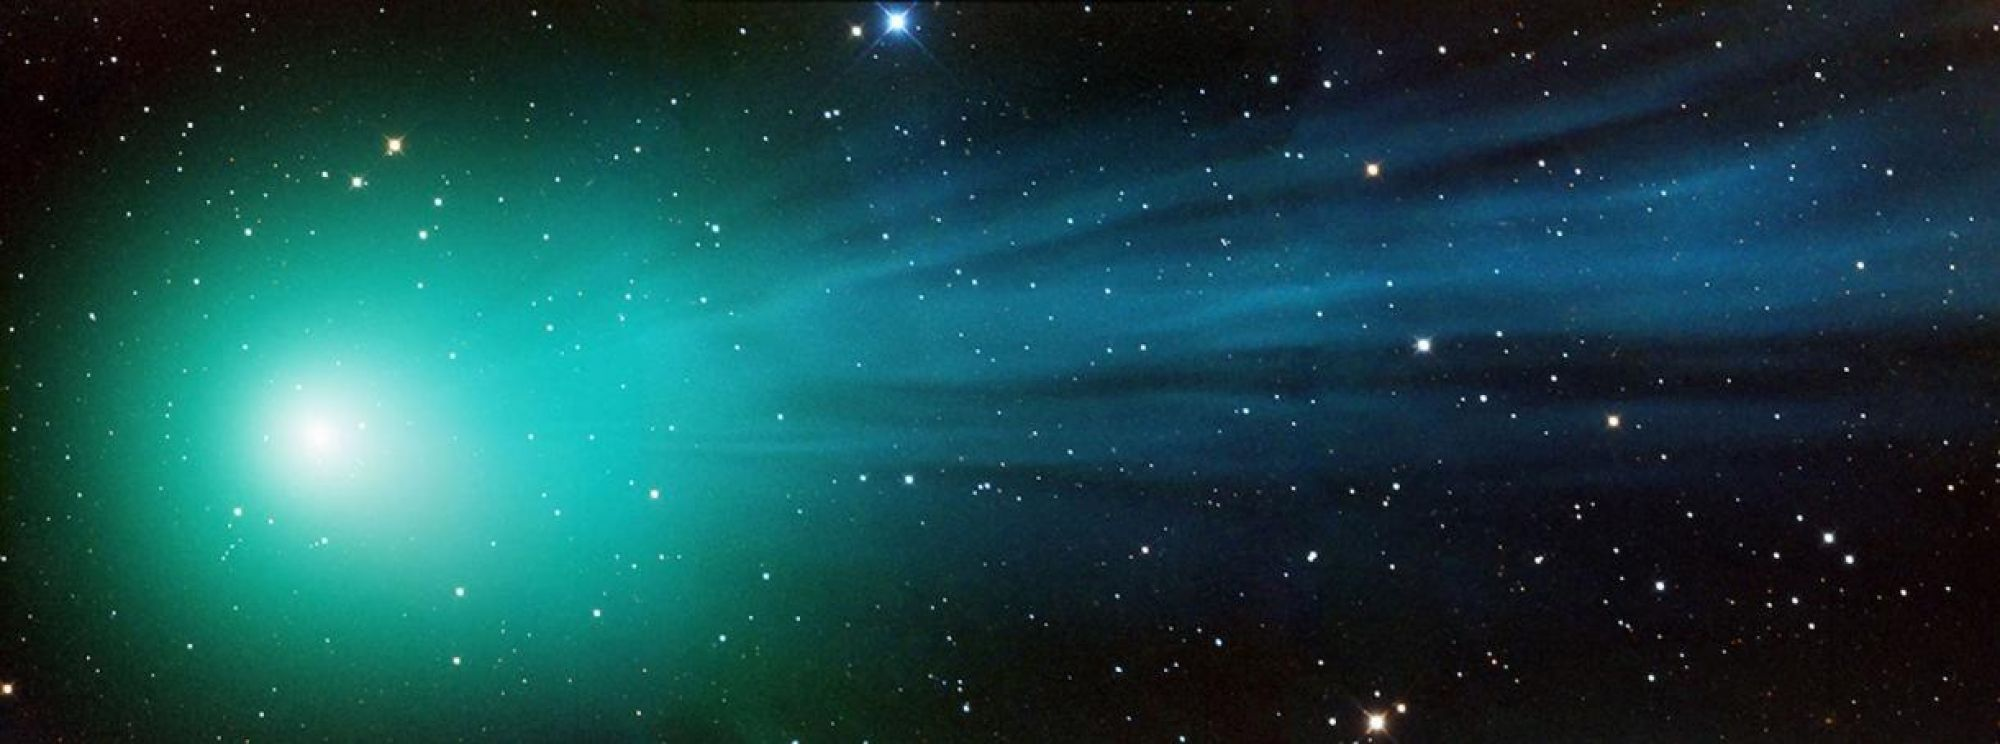 Image of Comet Lovejoy, also known as C/2014 Q2, passing through the solar system more than 50 million miles away from our own planet.